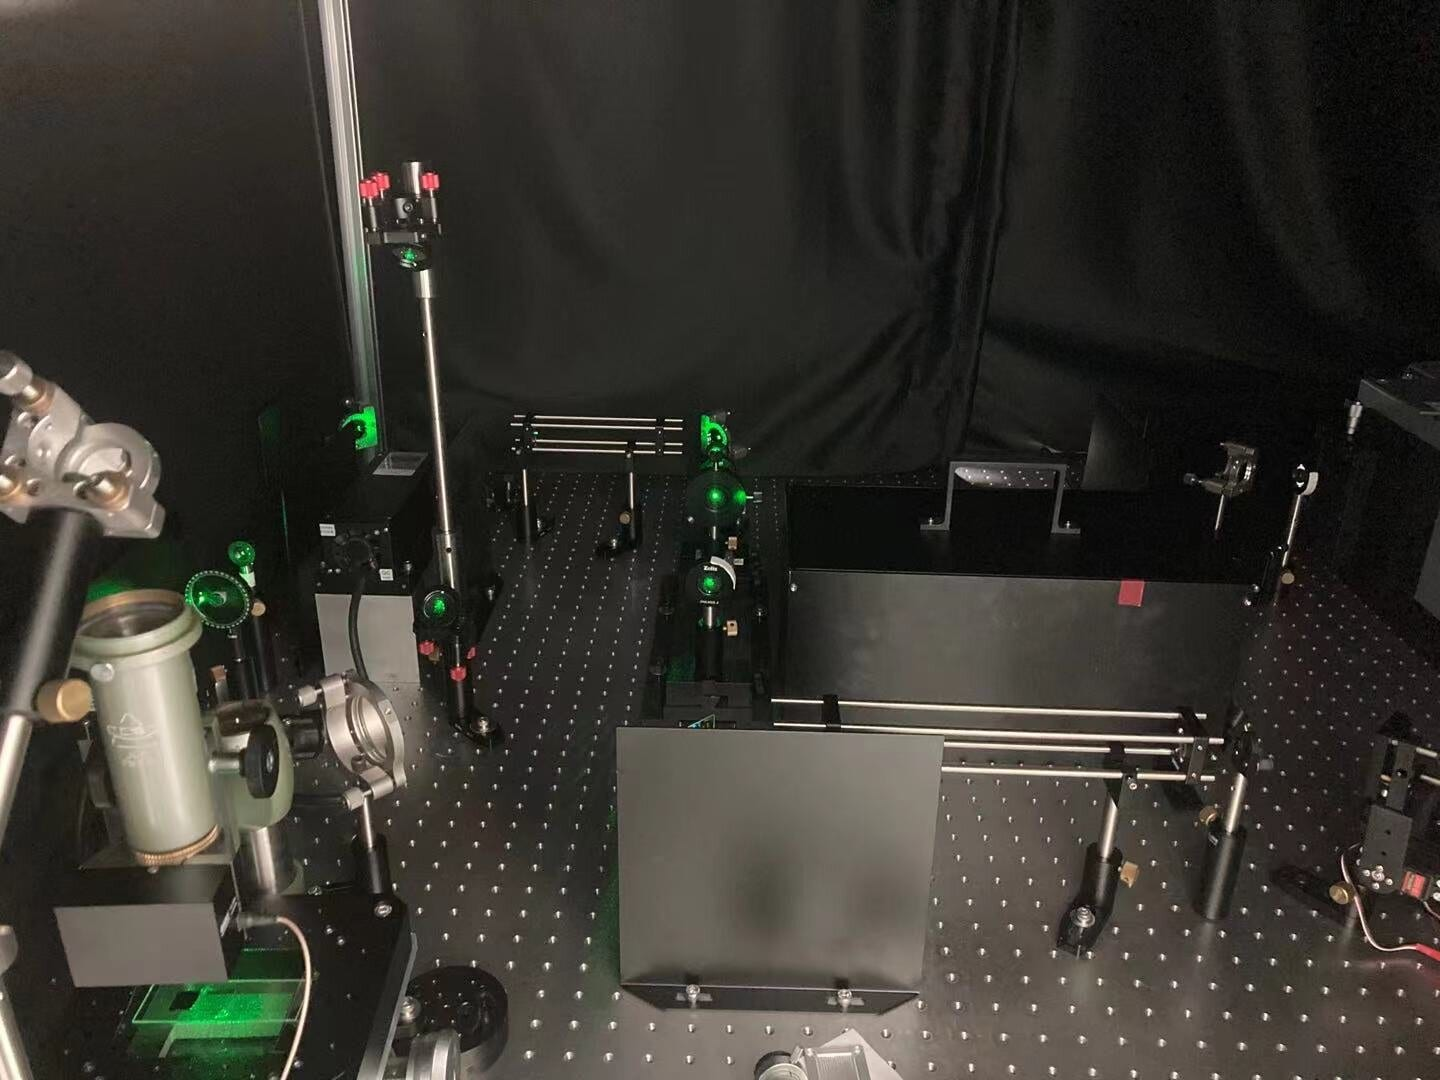 The new approach for digitizing color can be applied to cameras, displays and LED lighting. Because the color space studied isn't device dependent, the same values should be perceived as the same color even if different devices are used. Pictured is a corner of the optical setup built by the researchers. Credit: Min Qiu's PAINT research group, Westlake University